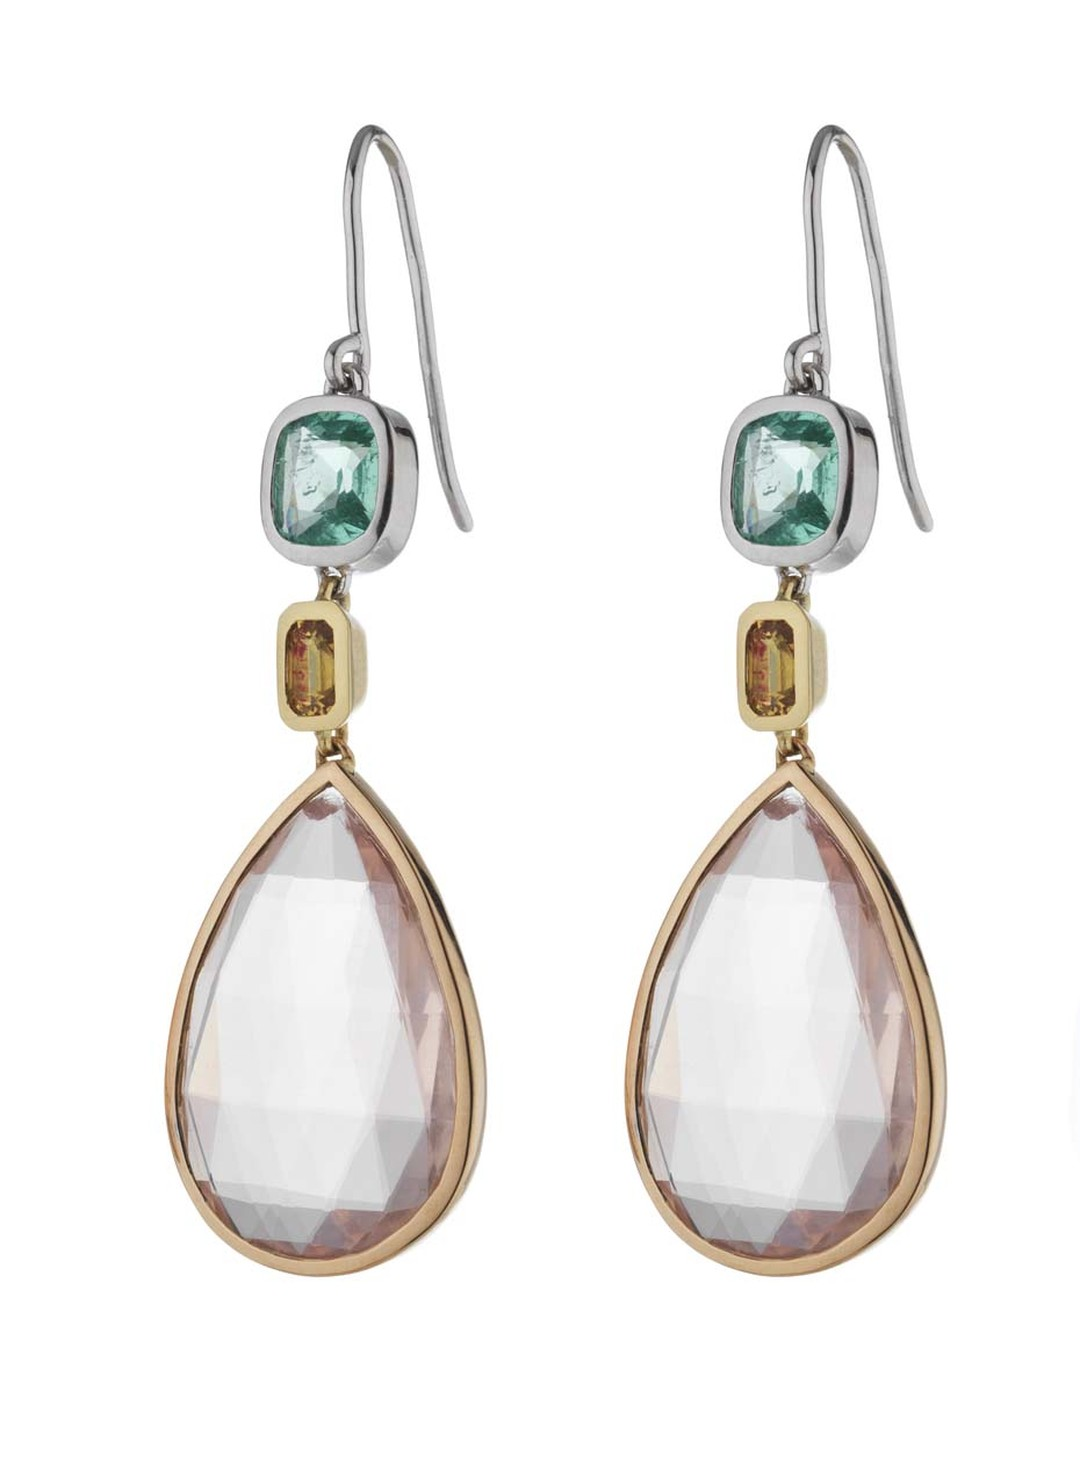 Holts London jewellery collection Sloane earrings with rose quartz drops set in mixed metal with a cushion-cut emerald and yellow sapphires (£3,400).